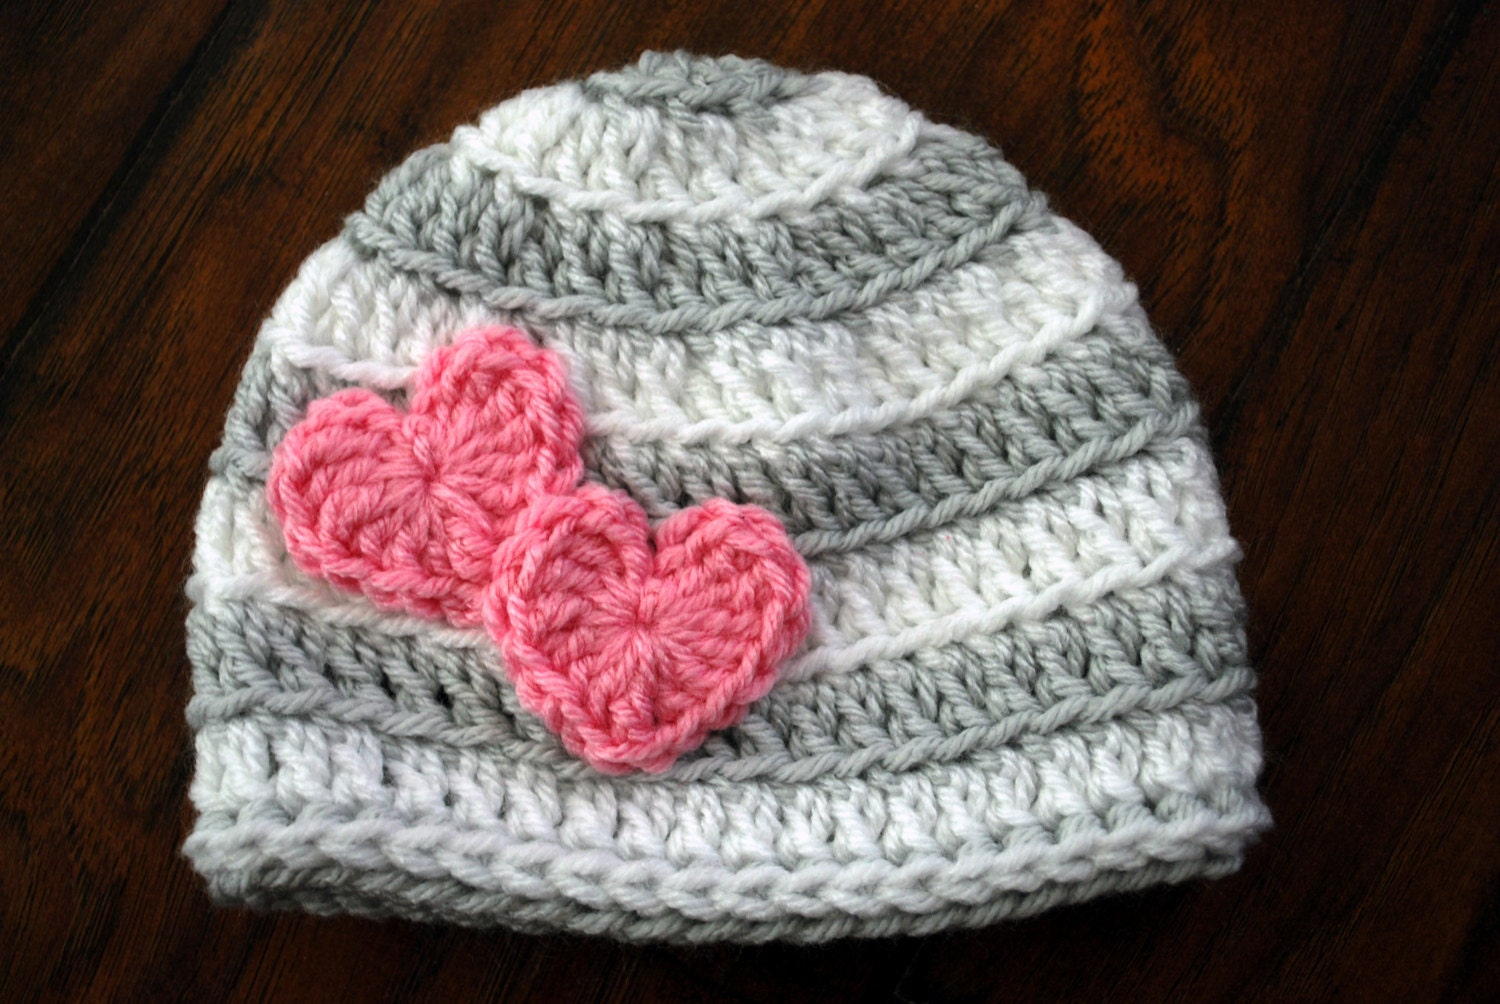 Crochet Valentine Hat : Valentine Striped Crochet Hat with Hearts by LoopySlipknot on Etsy